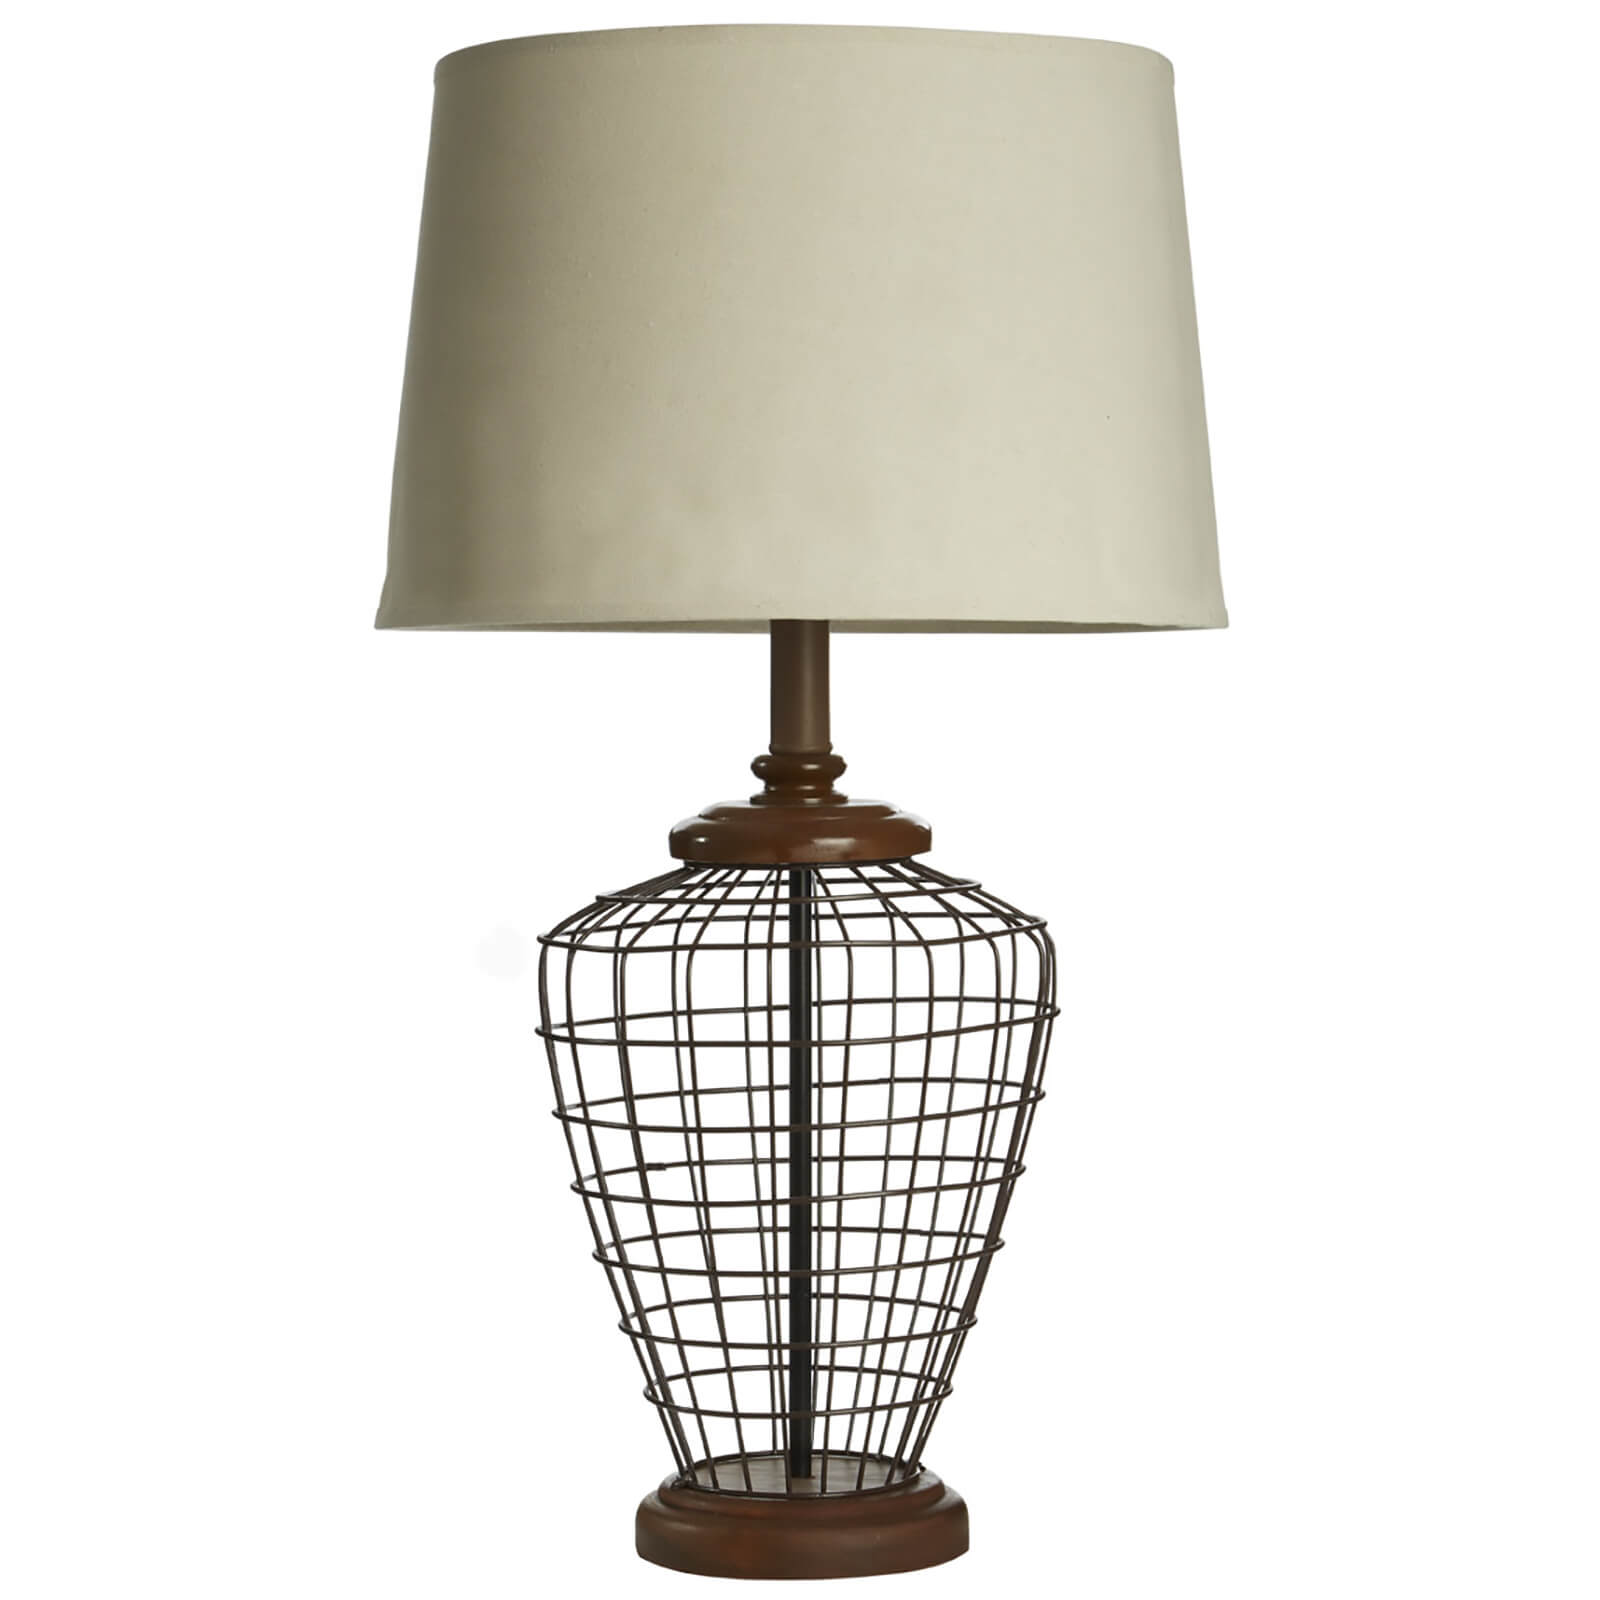 Fifty Five South Maine Table Lamp - Natural Linen Shade